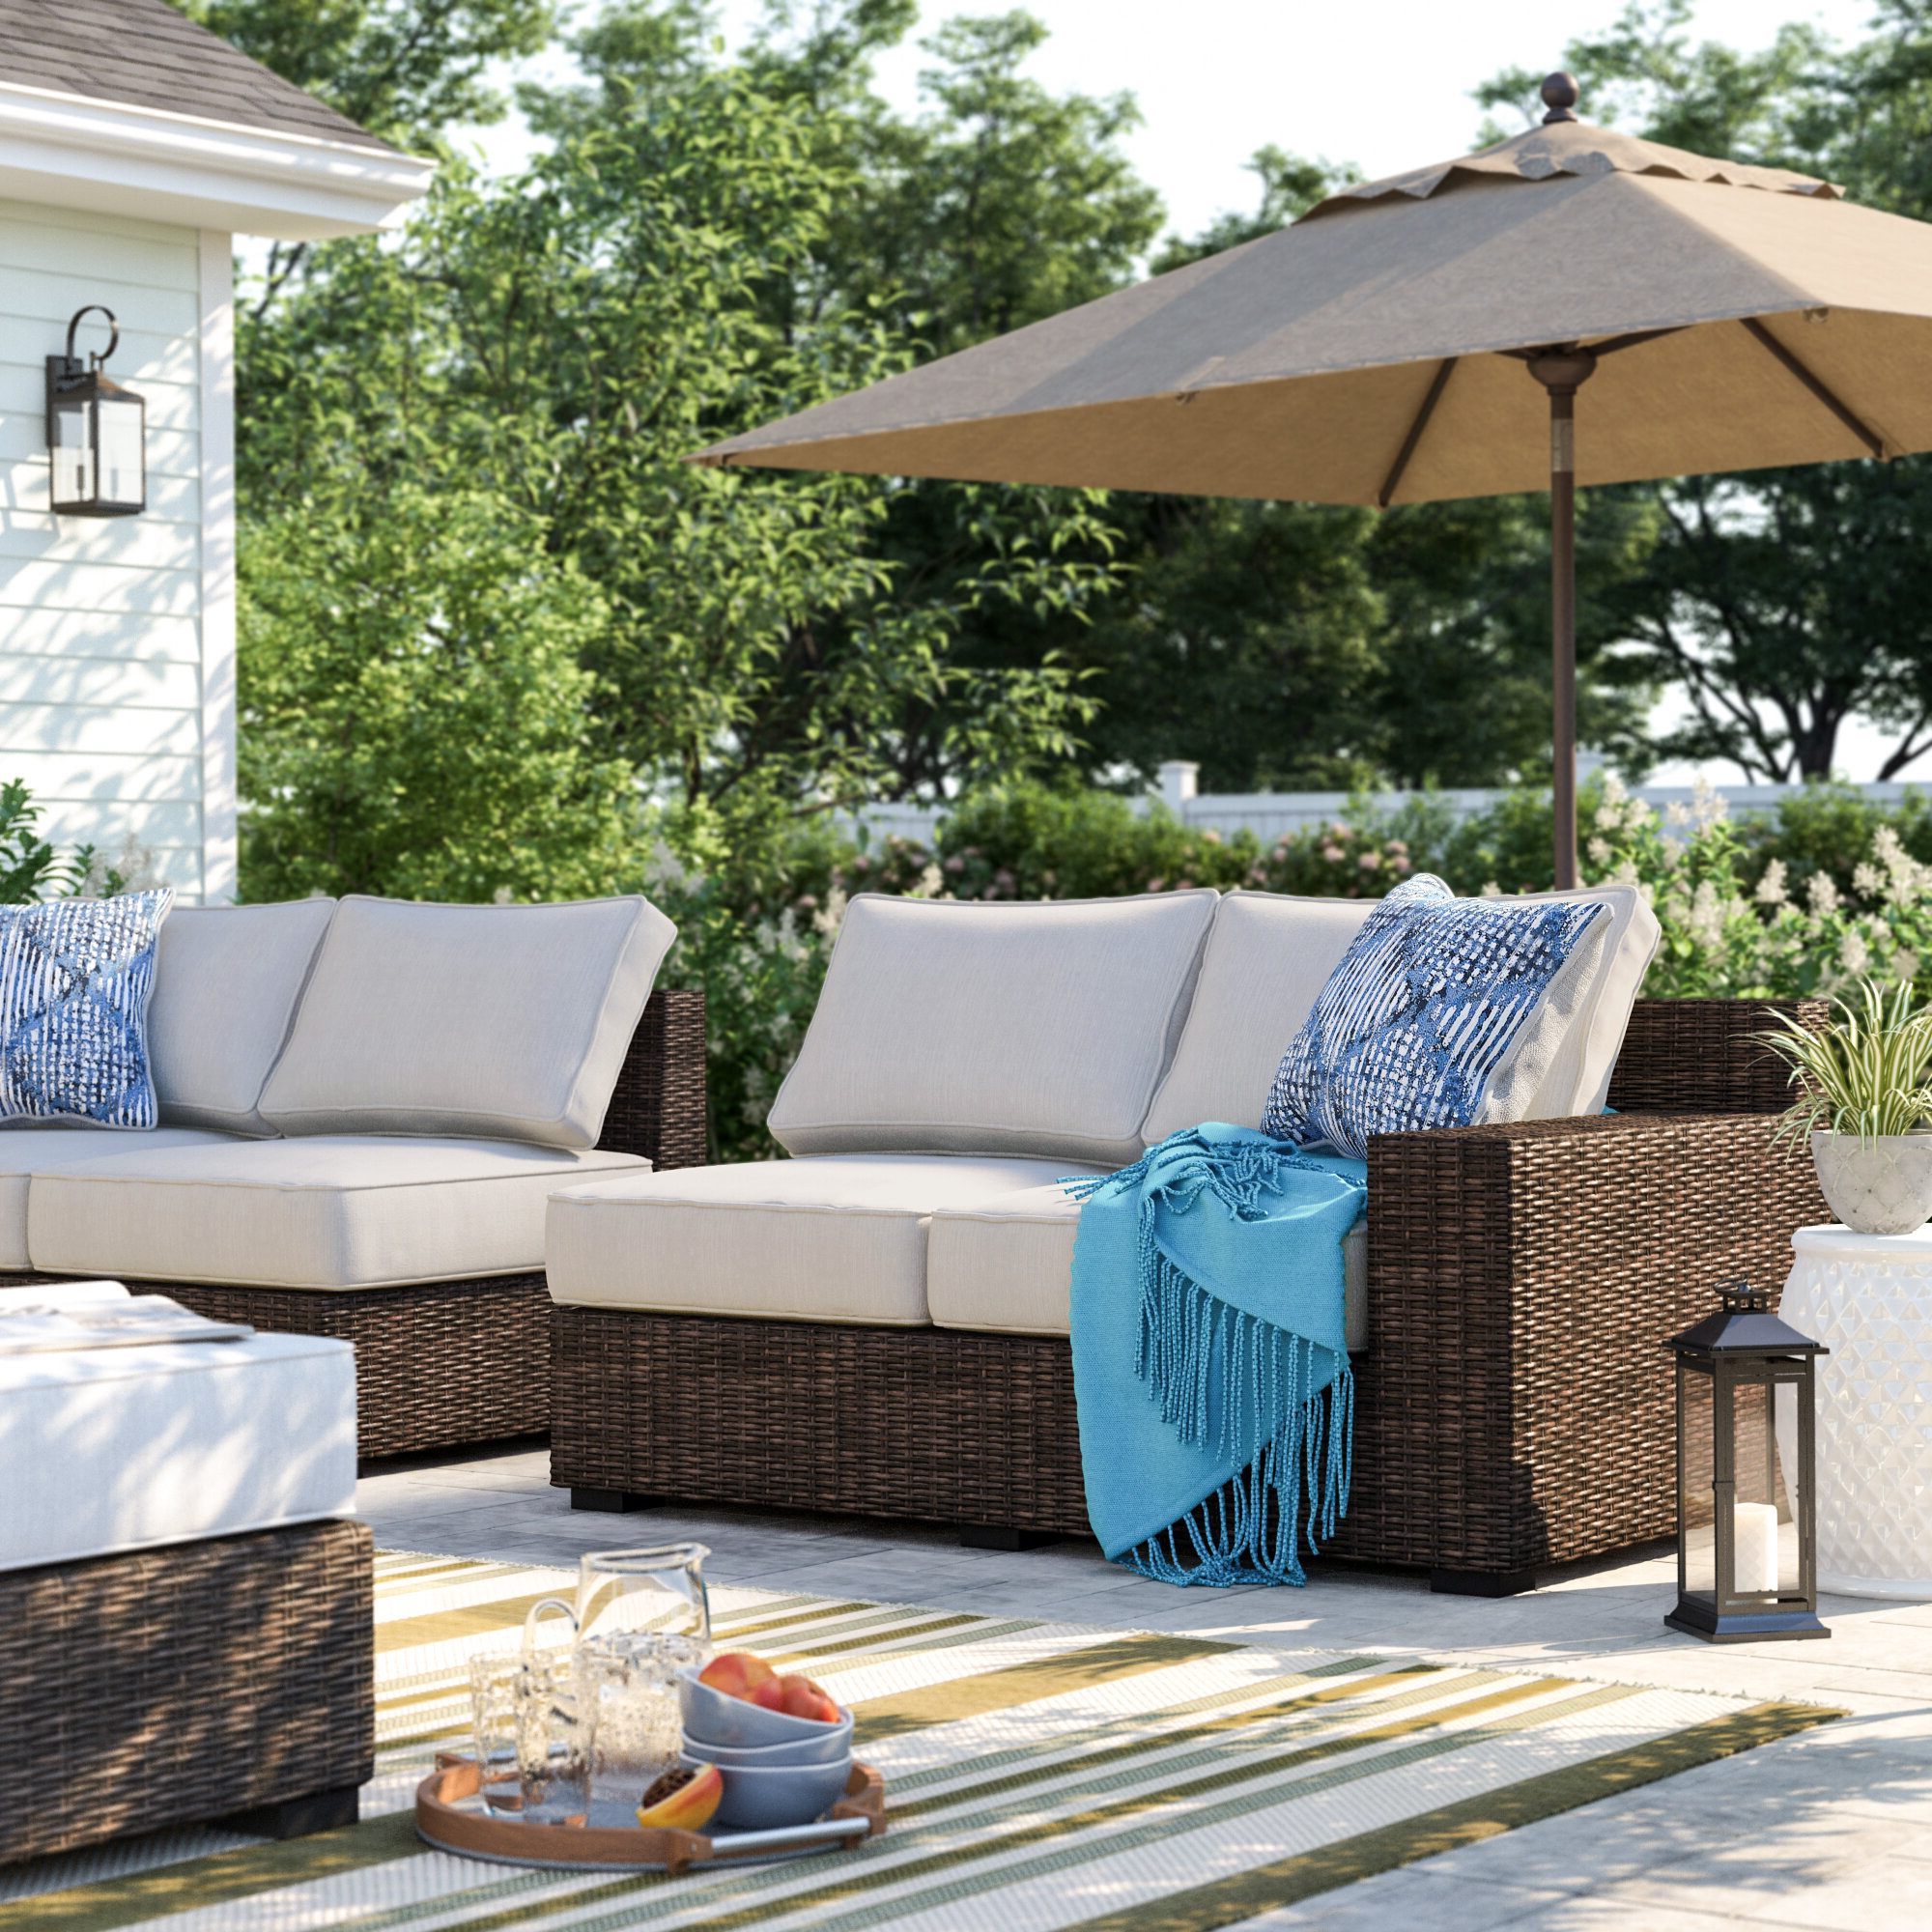 Oreland Patio Sofas With Cushions Throughout Famous Oreland Loveseat With Cushions (View 16 of 20)